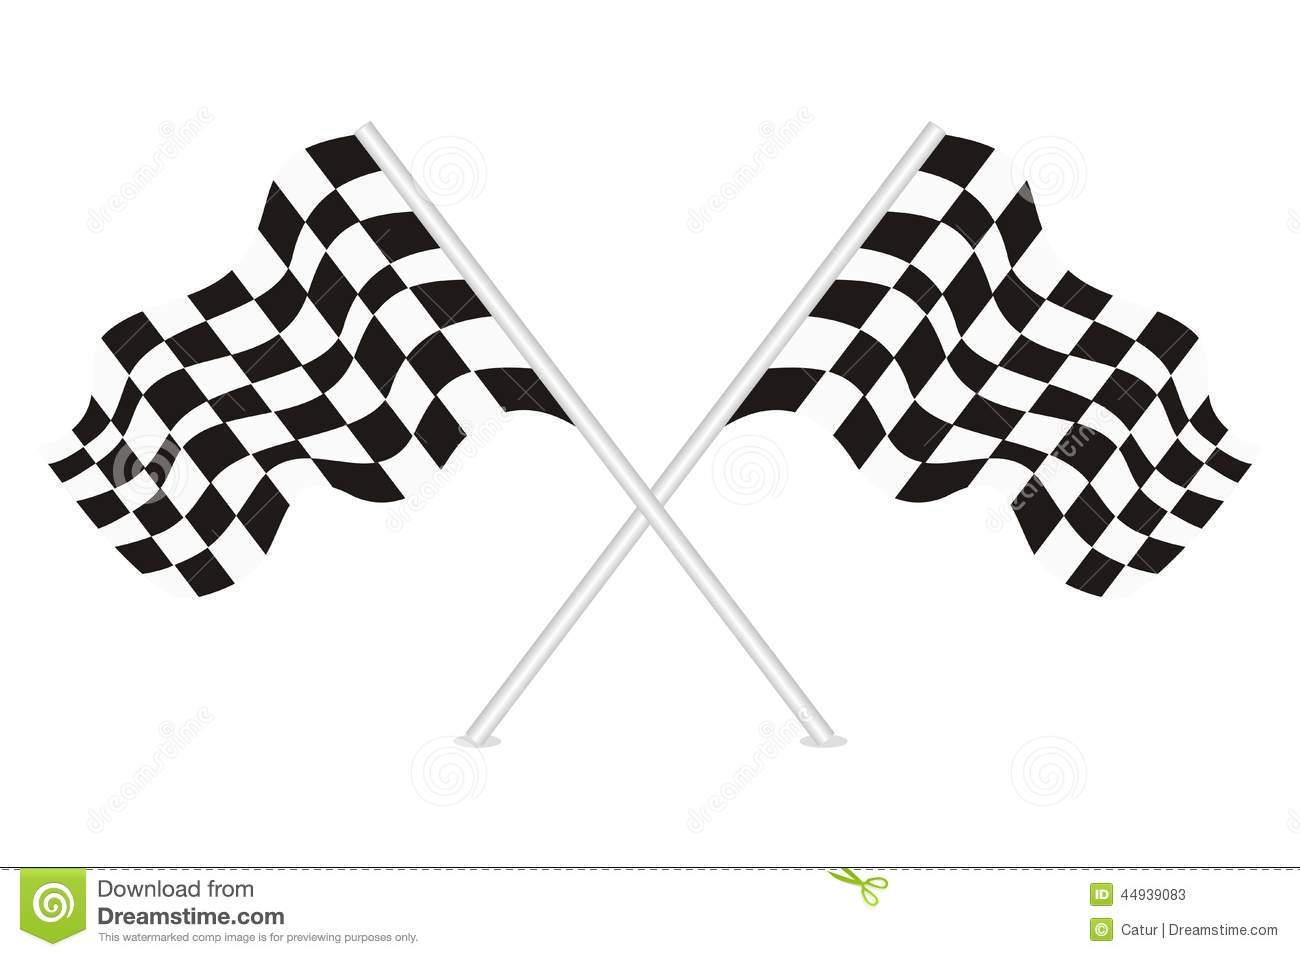 Speedometer Clipart as well Royalty Free Stock Images F1 Formula 1 Racing Circuits Image6159739 as well Car Drawing Tutorial as well Relay Race Cliparts also Tire Tread Patterns Clipart. on race car illustration